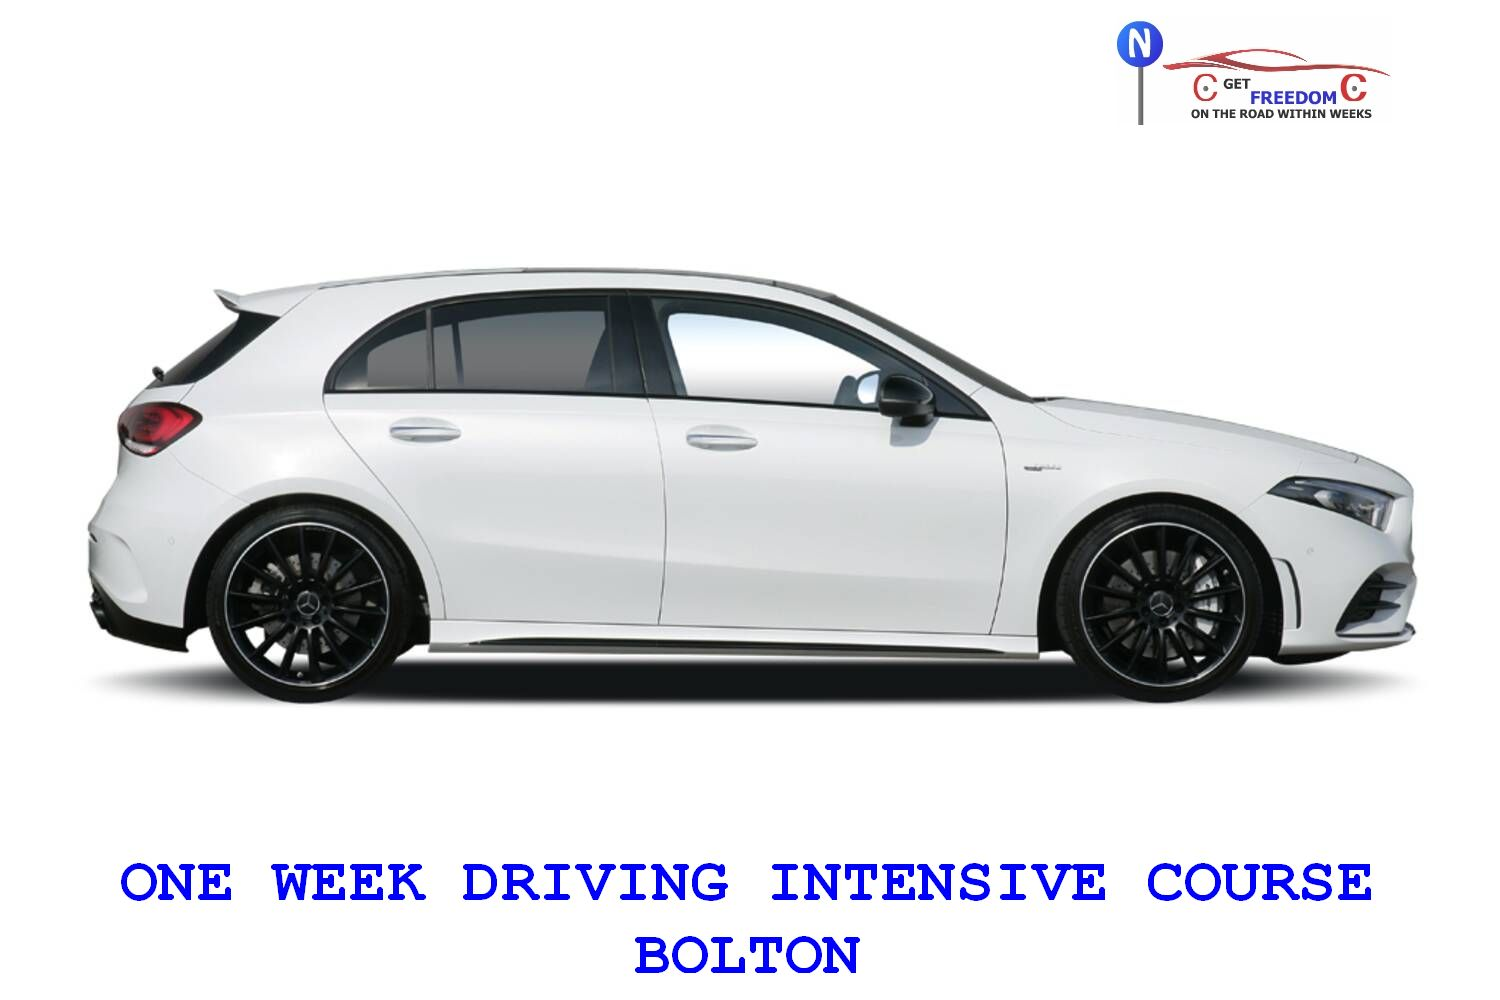 ONE WEEK DRIVING INTENSIVE COURSE BOLTON